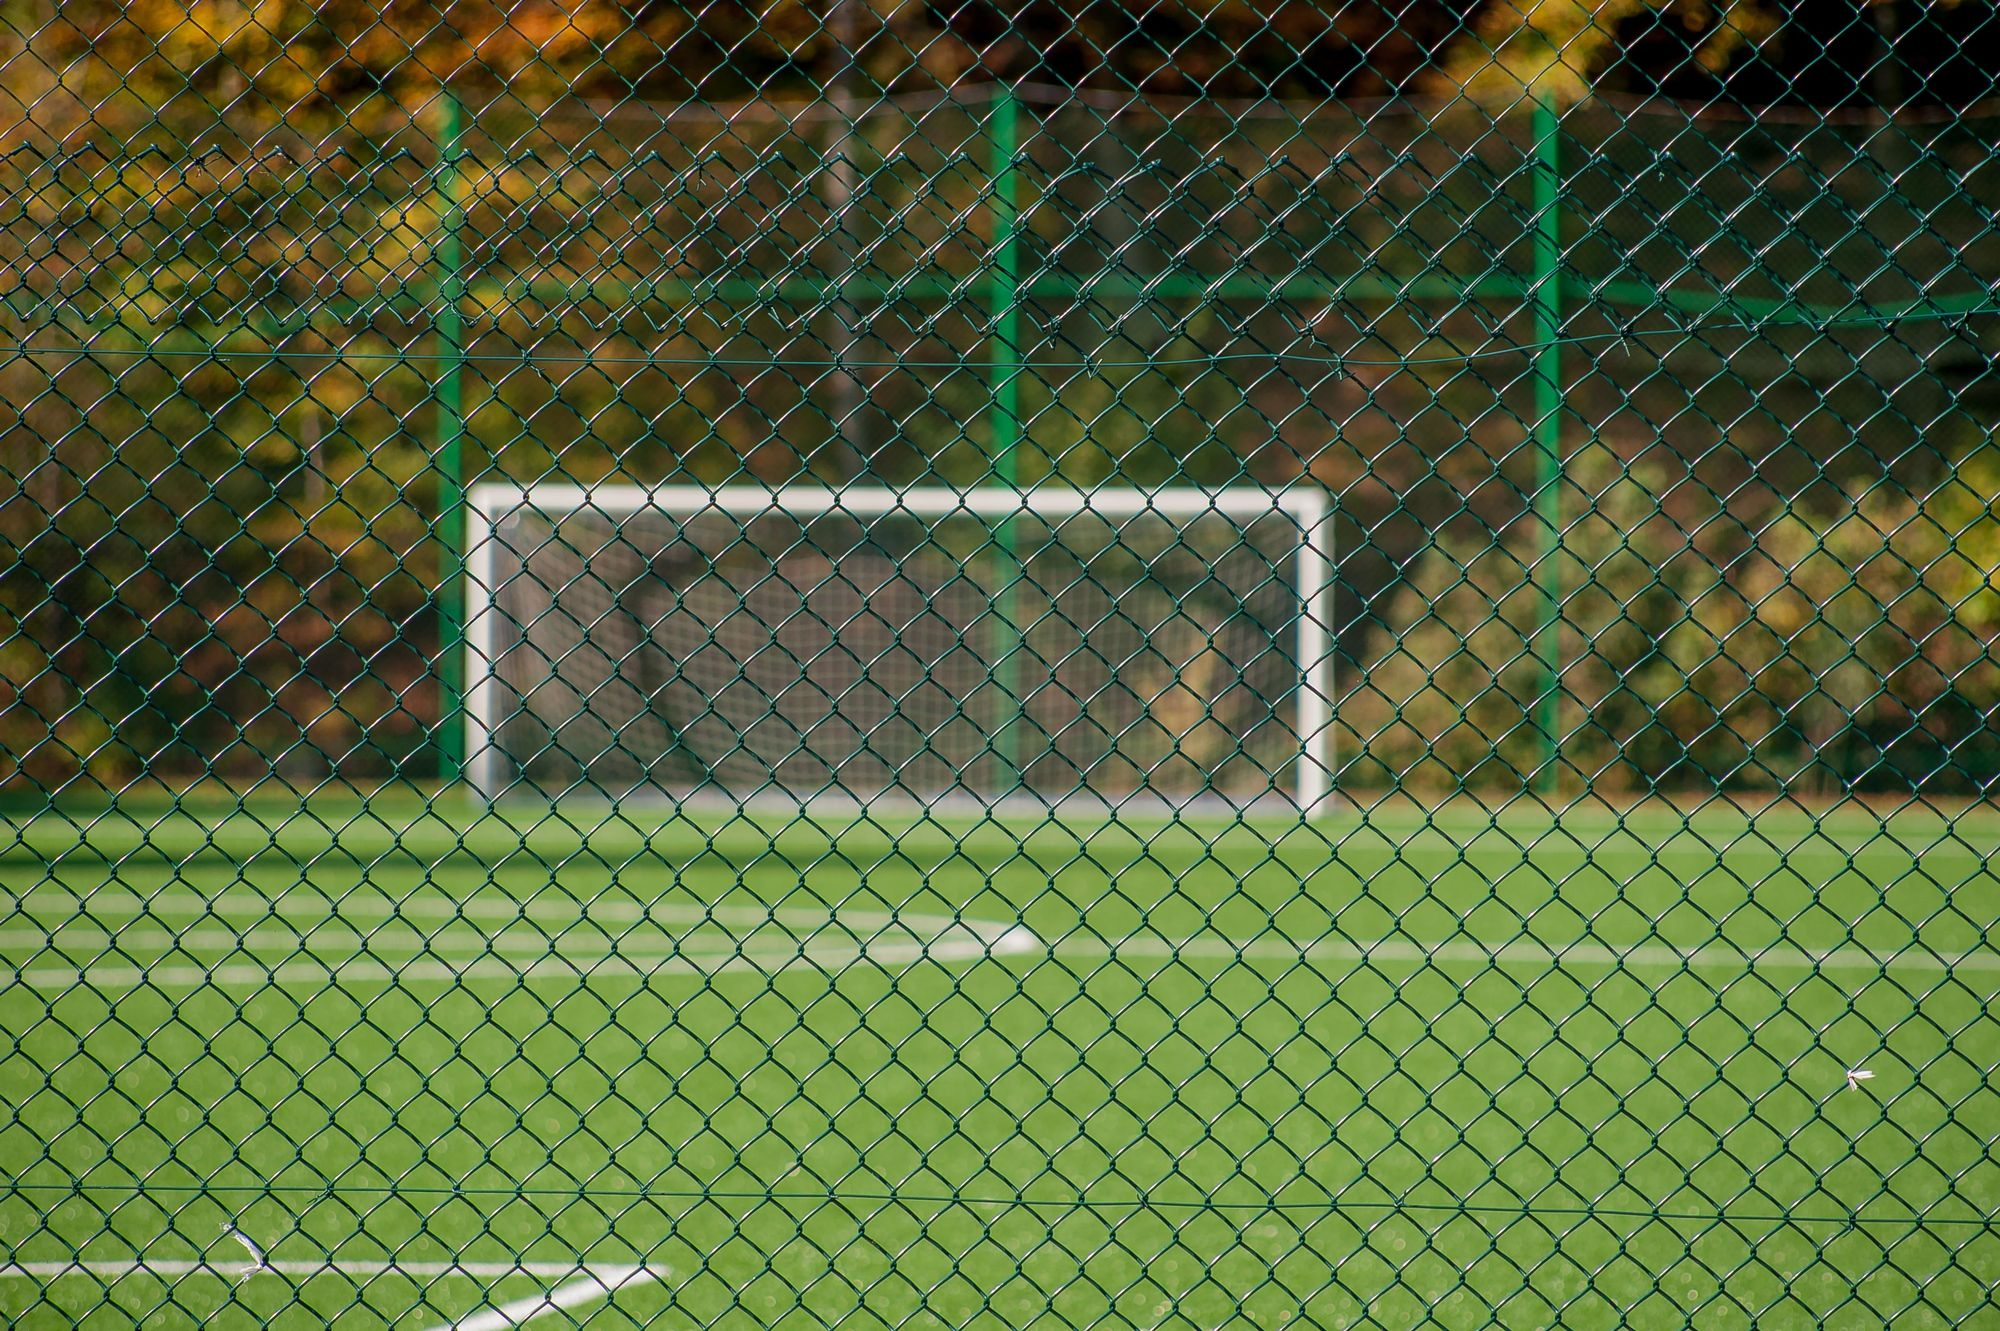 Terrain de football grillagé.